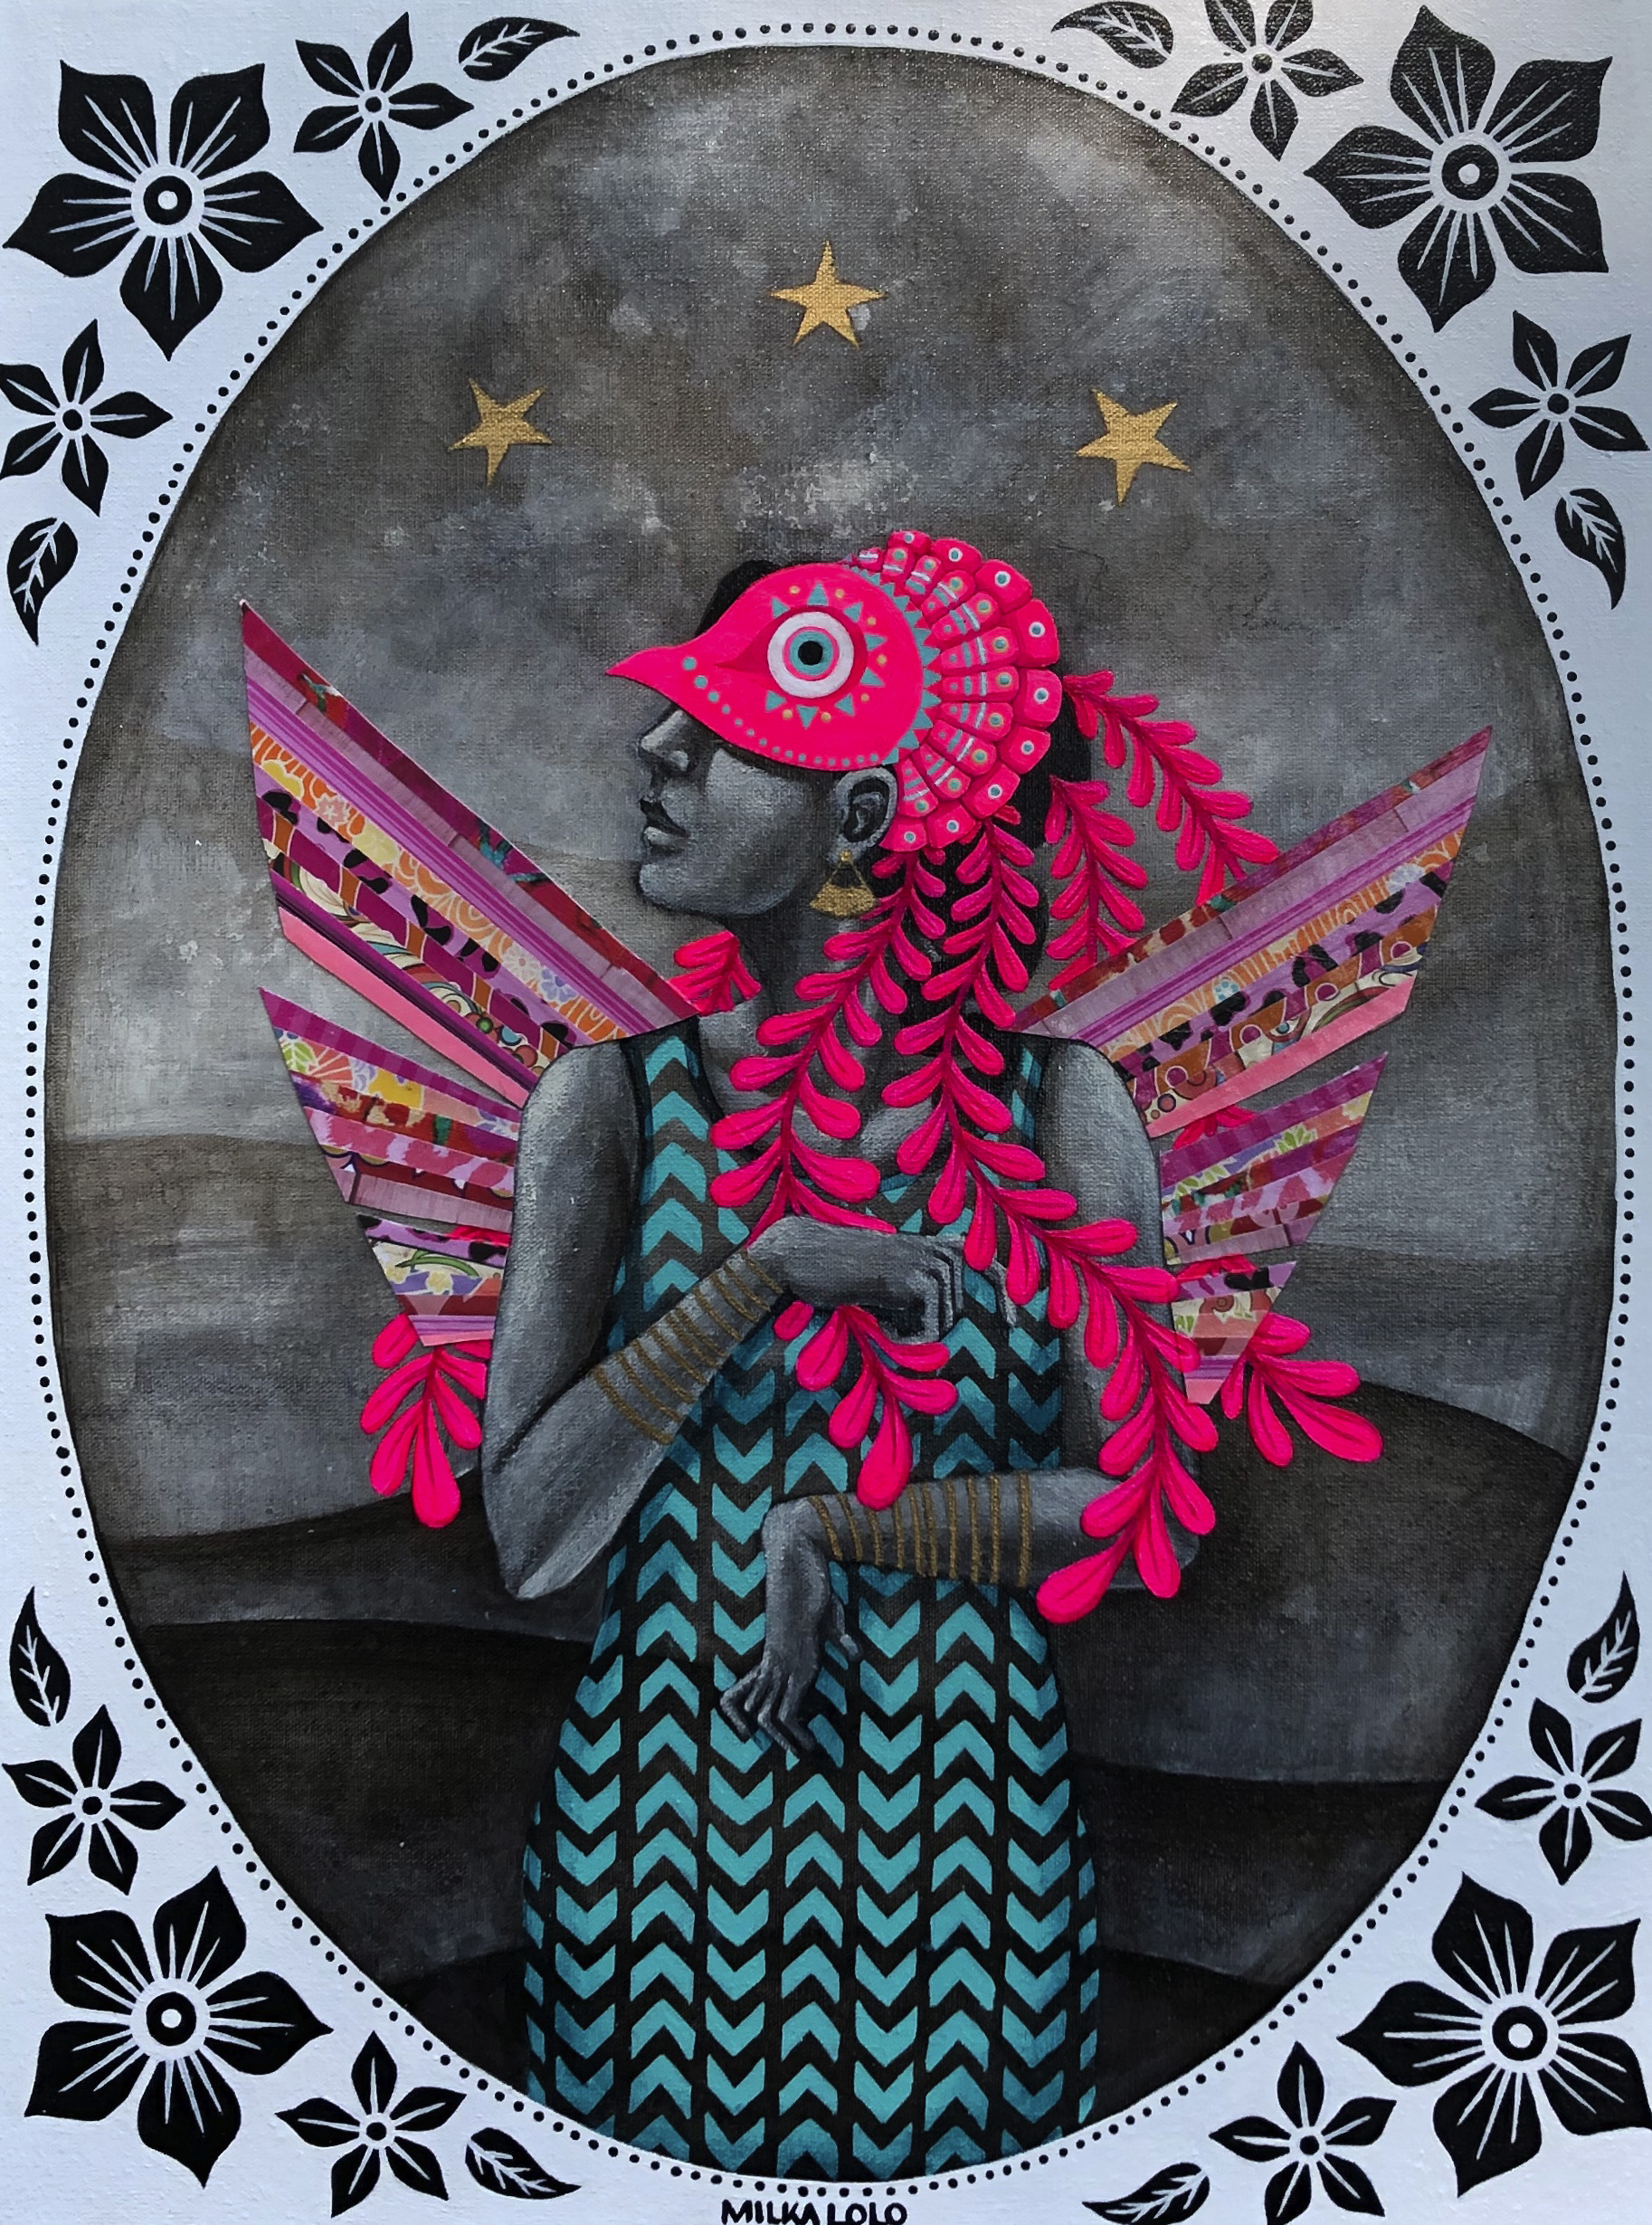 Painting of a feminine figure standing frontally, within an oval frame with three black flowers at each corner, and in front of grey hills with three gold stars in the sky above their head. They wear a turquoise and black chevron-patterned dress and a neon pink bird mask that covers the top of their face and head, with four long feathers hanging down across their chest and back. Their head is in profile to the left and their hands are held at angles in front of their chest and stomach. They have short, patterned pink wings.